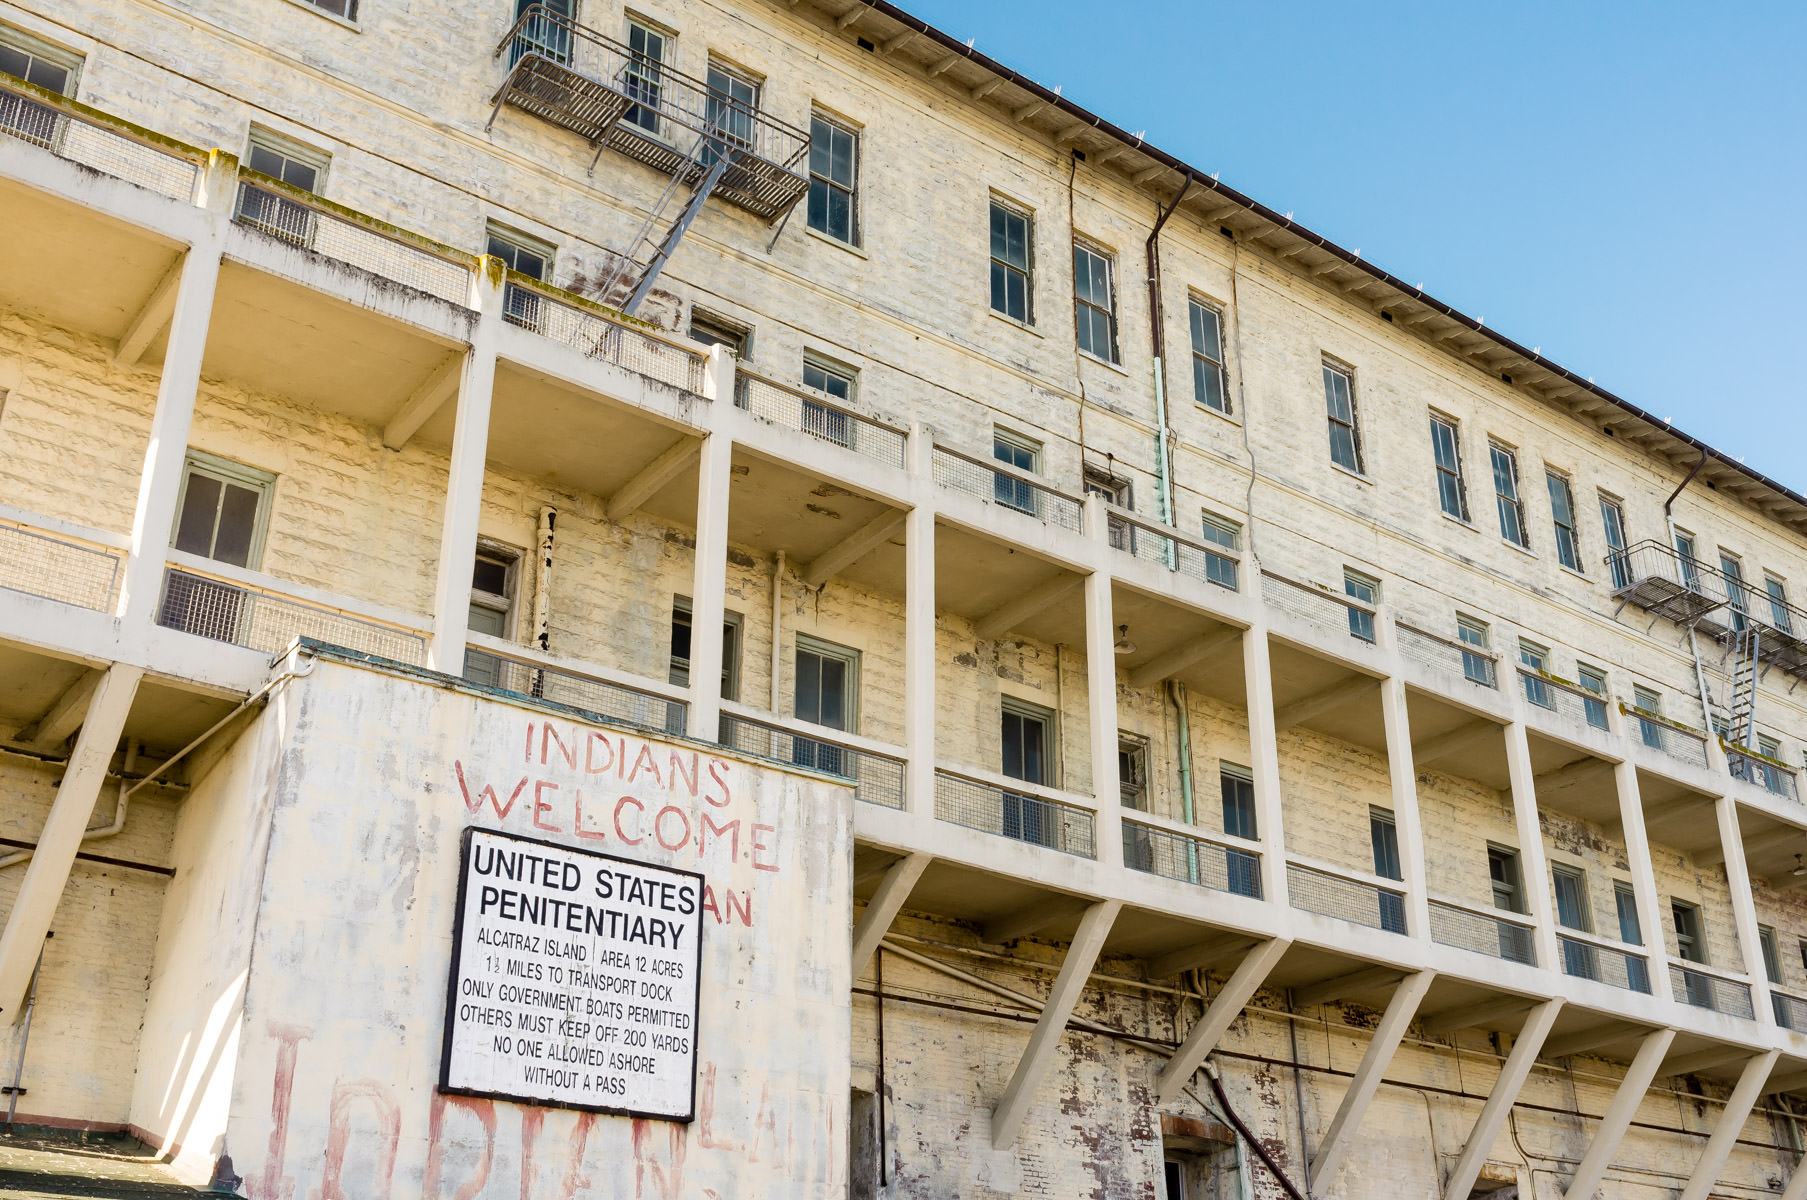 Alcatraz Penitentiary's Building 64, where fading graffiti—a relic of the nineteen-month (November 20, 1969, to June 11, 1971) occupation of the island by the Indians of All Tribes organization—welcomes modern-day visitors to the island.